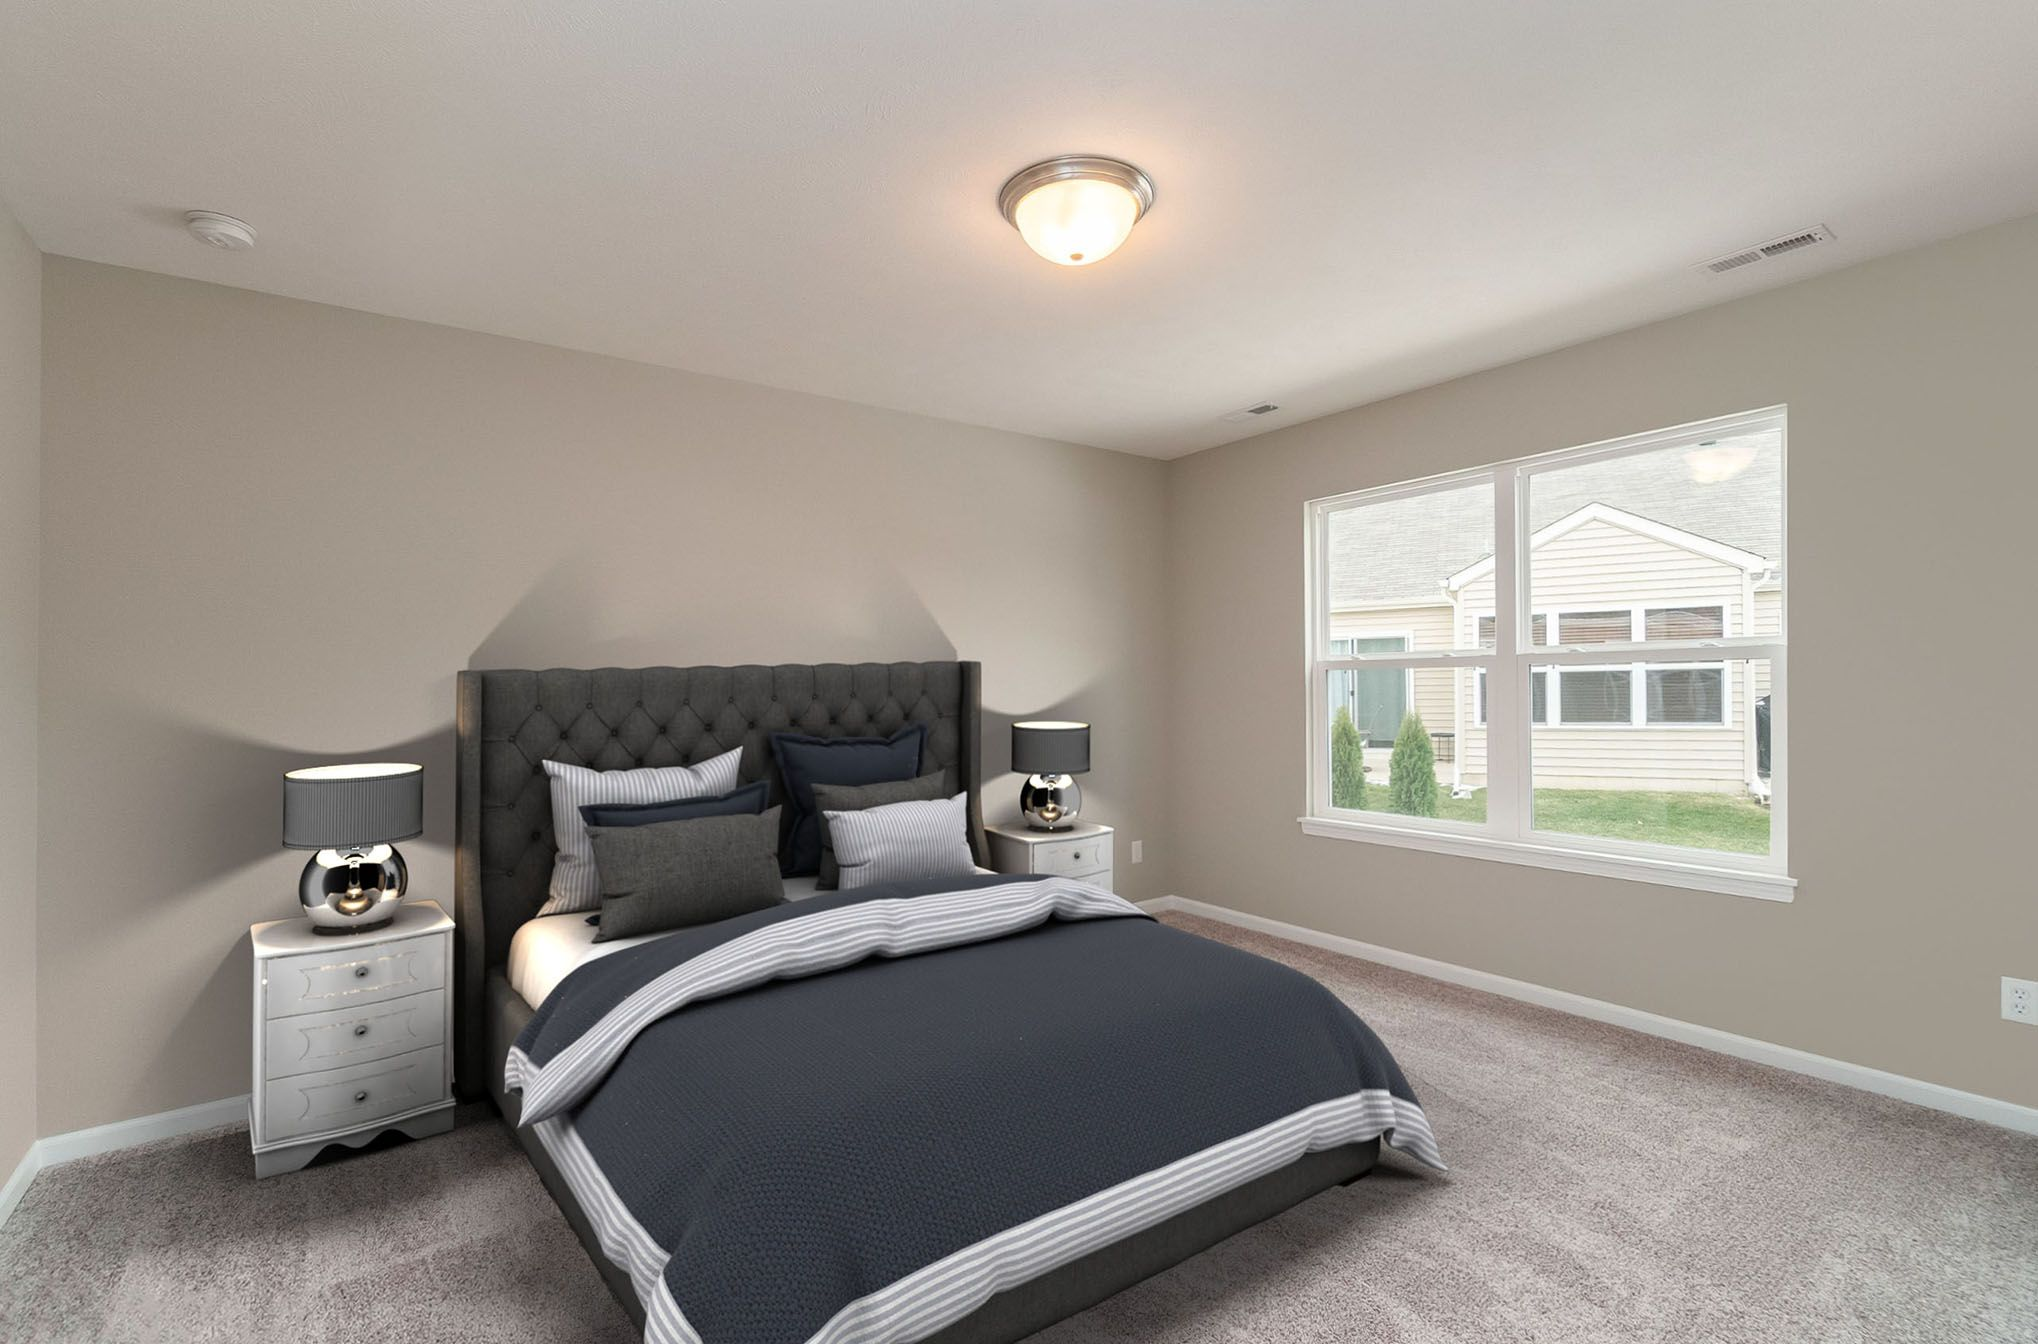 Bedroom featured in the Bradford By Olthof Homes in Gary, IN